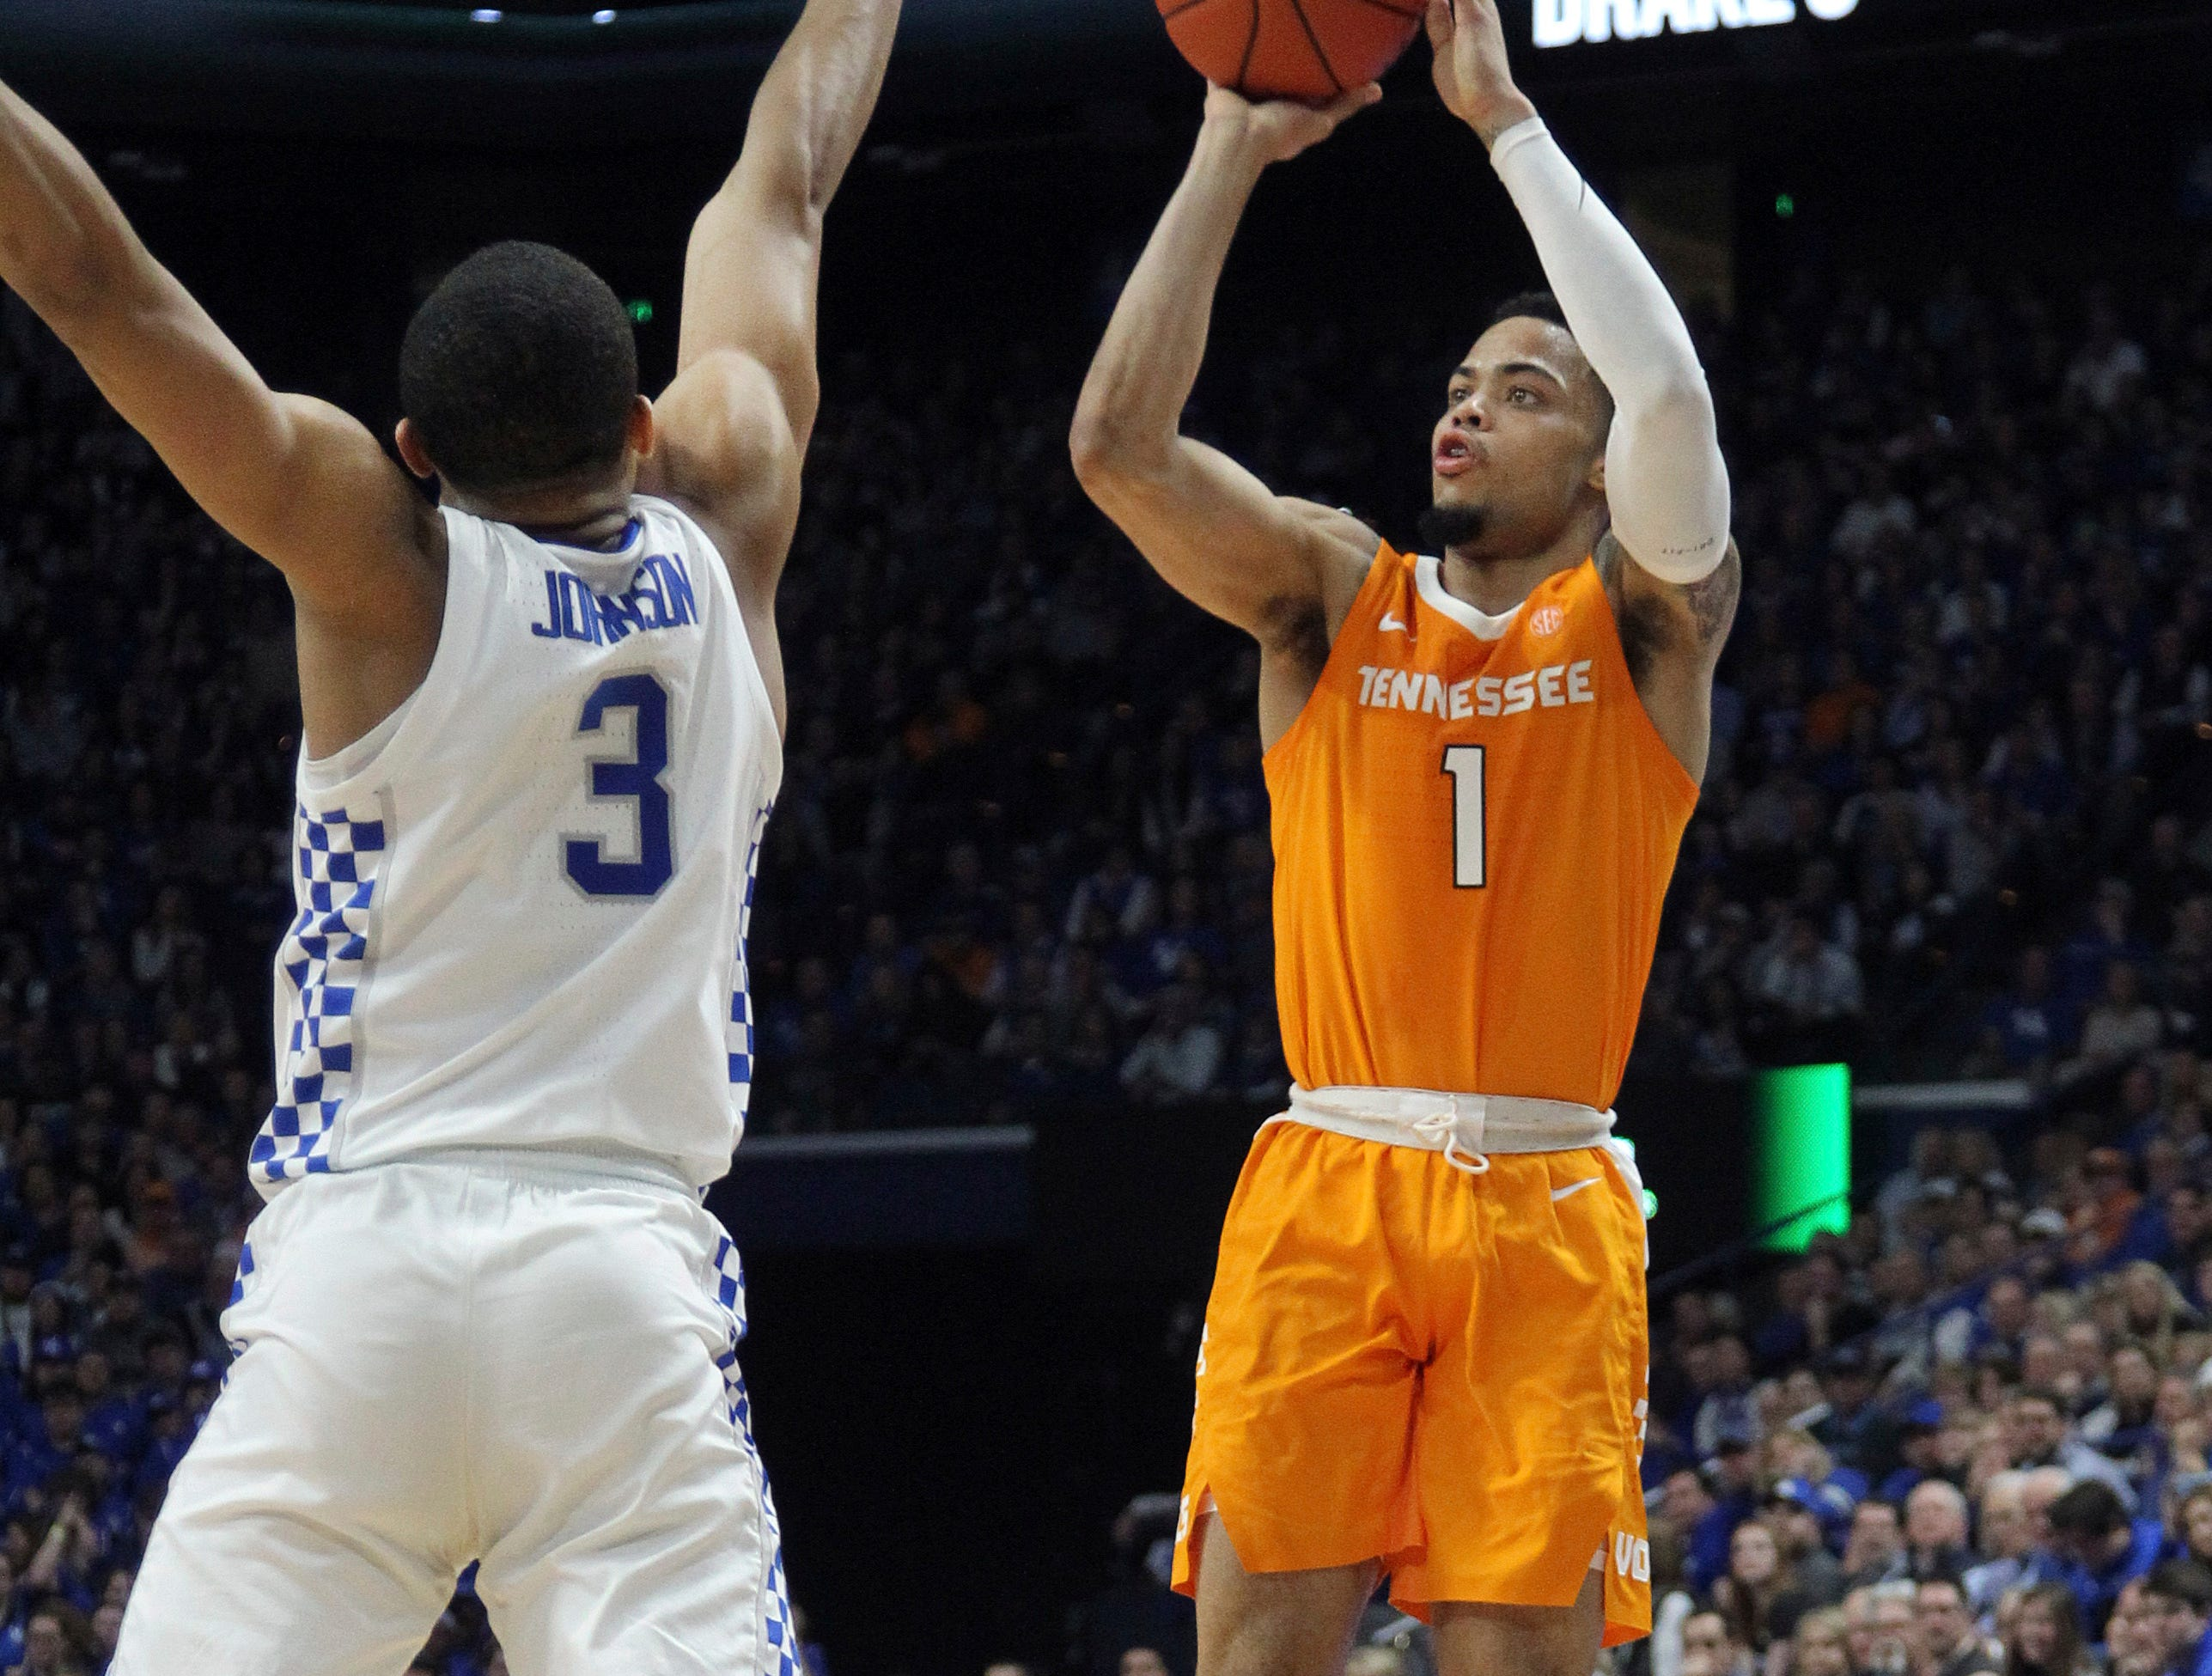 Tennessee's Lamonte Turner (1) shoots while defended by Kentucky's Keldon Johnson (3) during the second half of an NCAA college basketball game in Lexington, Ky., Saturday, Feb. 16, 2019. Kentucky won 86-69. (AP Photo/James Crisp)